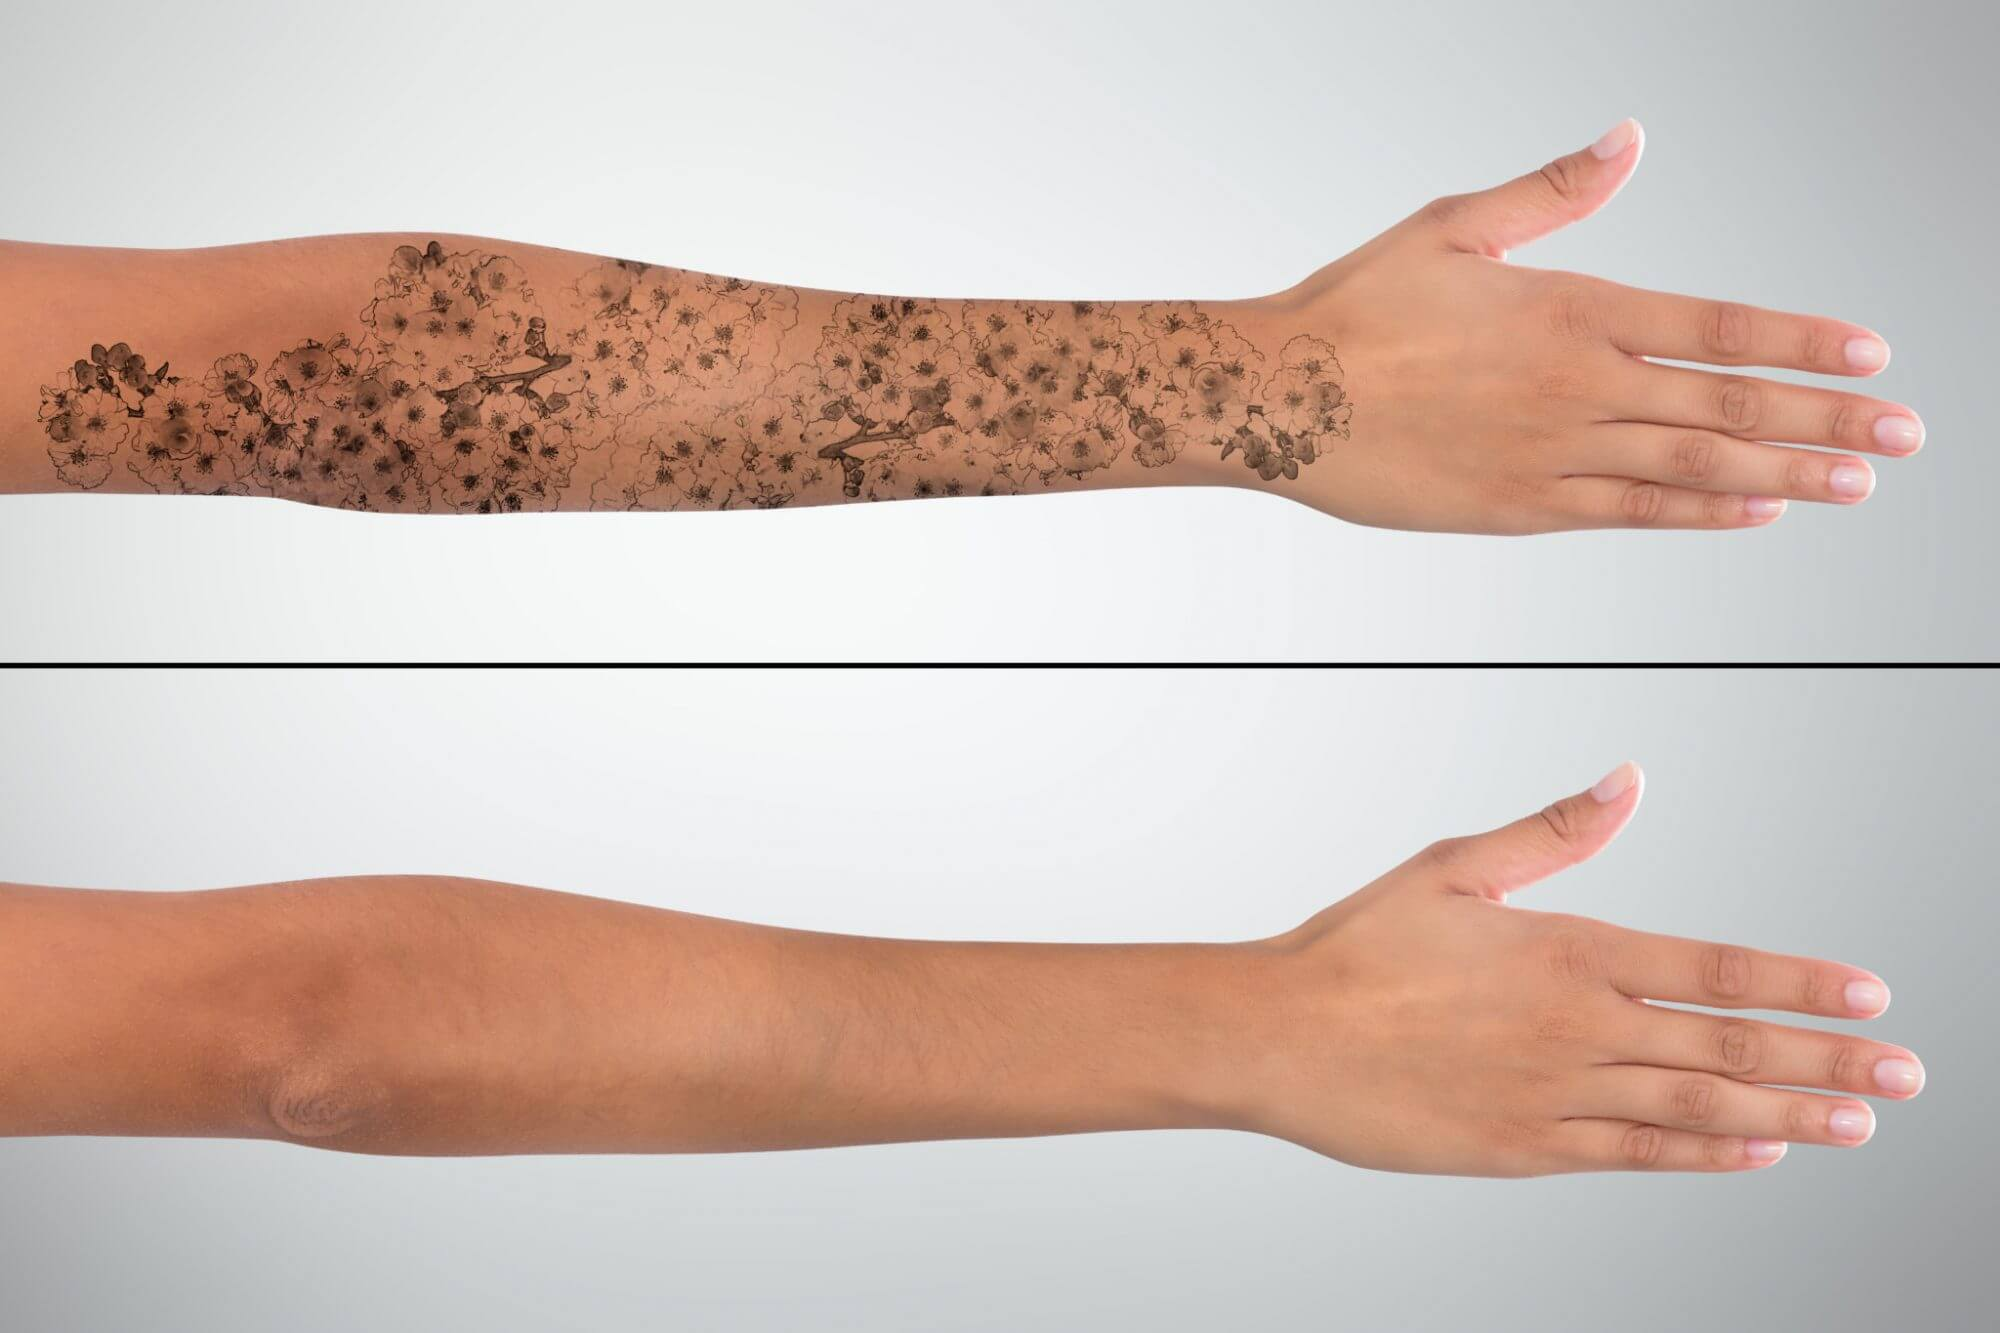 The PicoWay Laser—The Next Level of Tattoo Removal